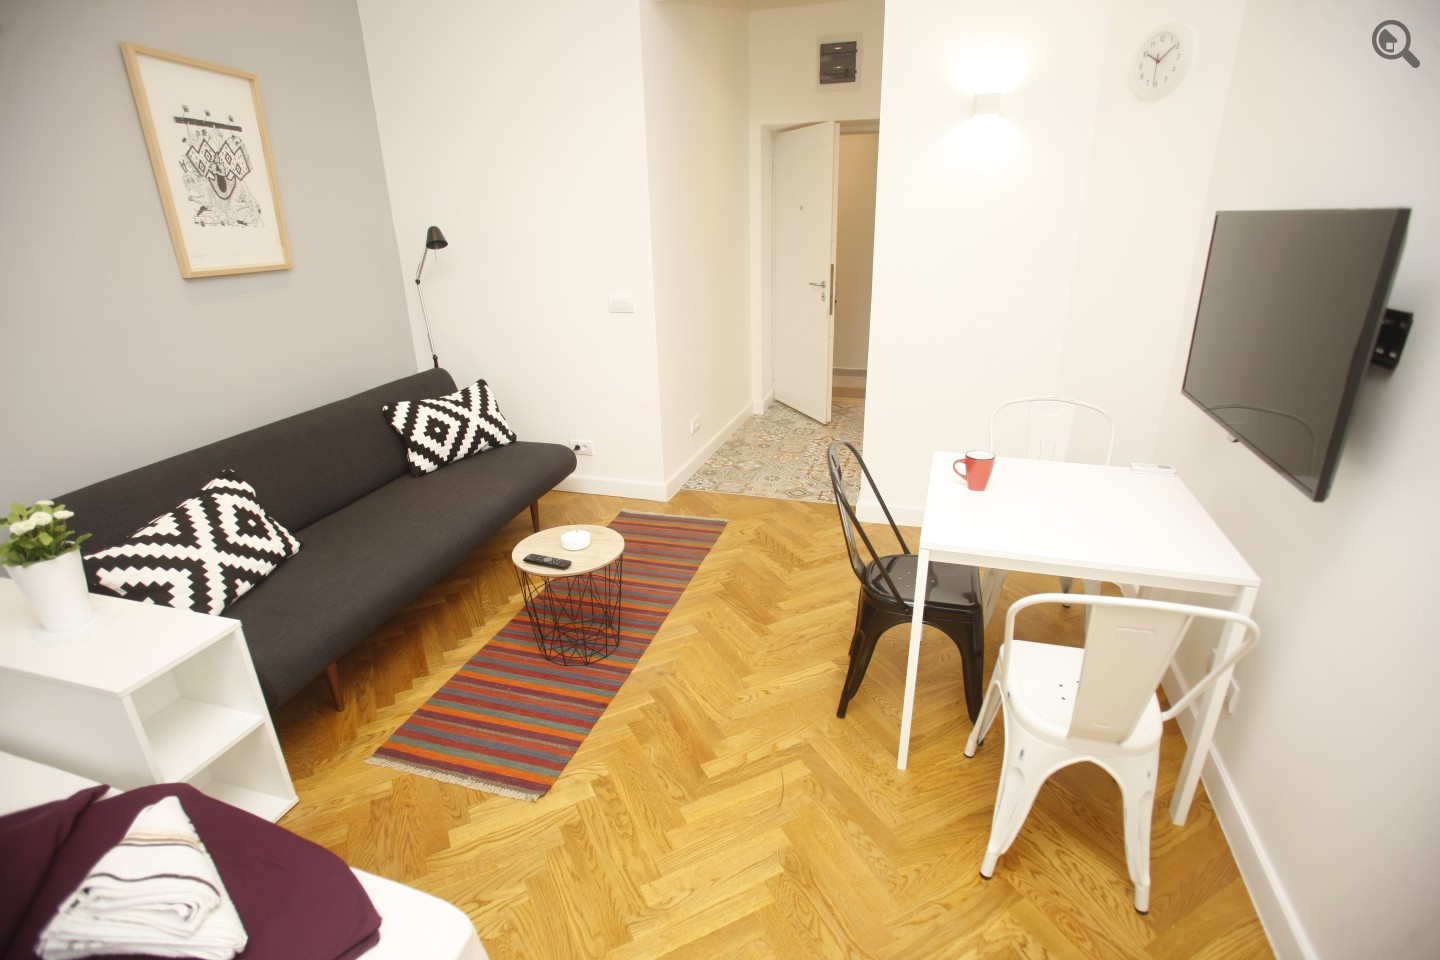 Belgrade Apartment | Studio Apartment Tramvaj 3 Belgrade Zvezdara | Short Term Rentals